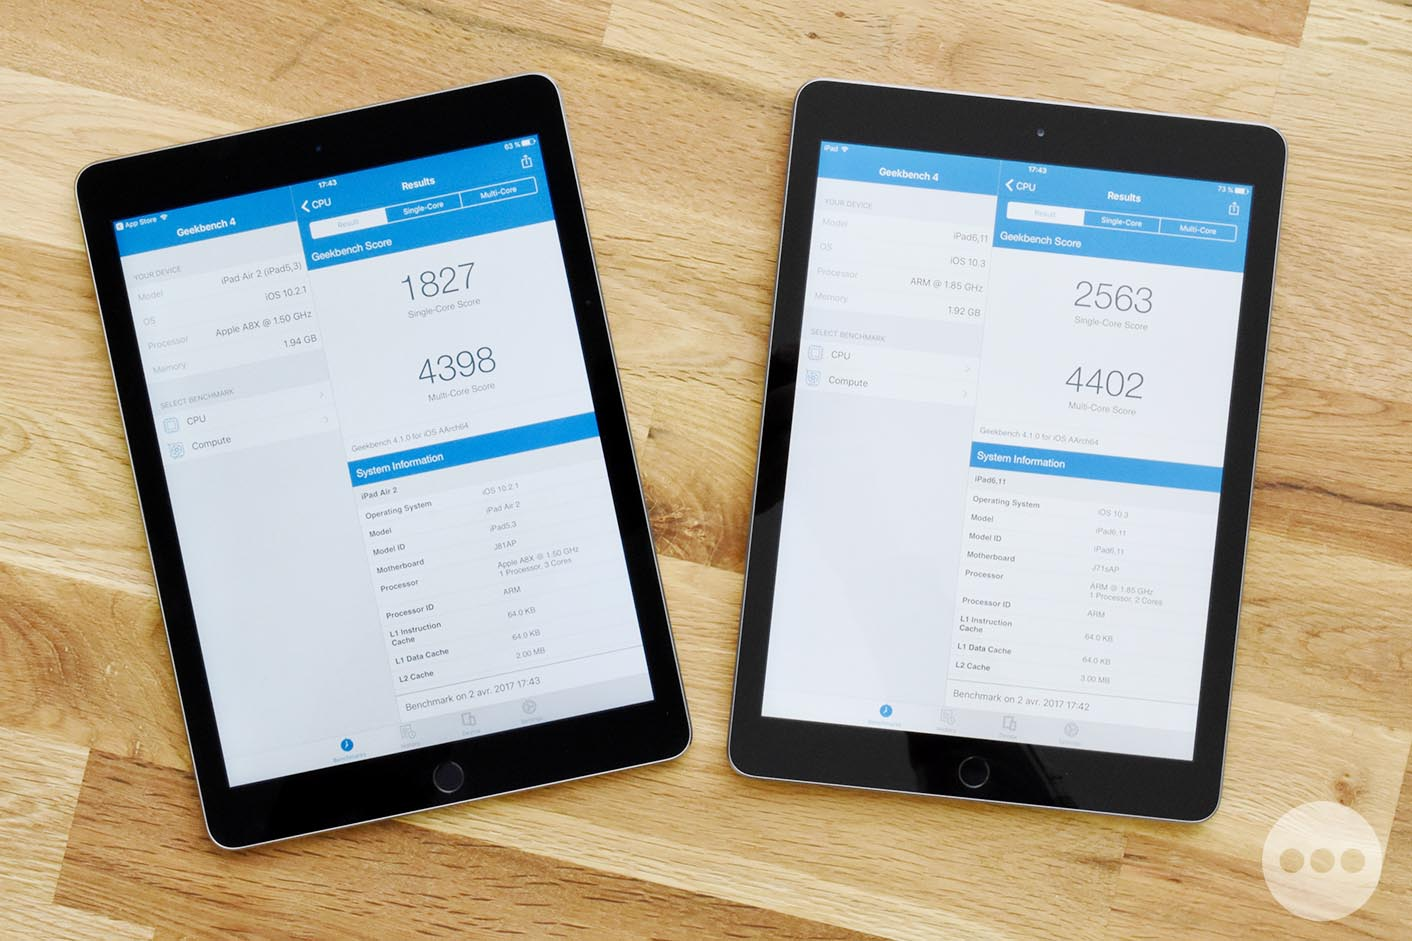 iPad 5 Geekbench